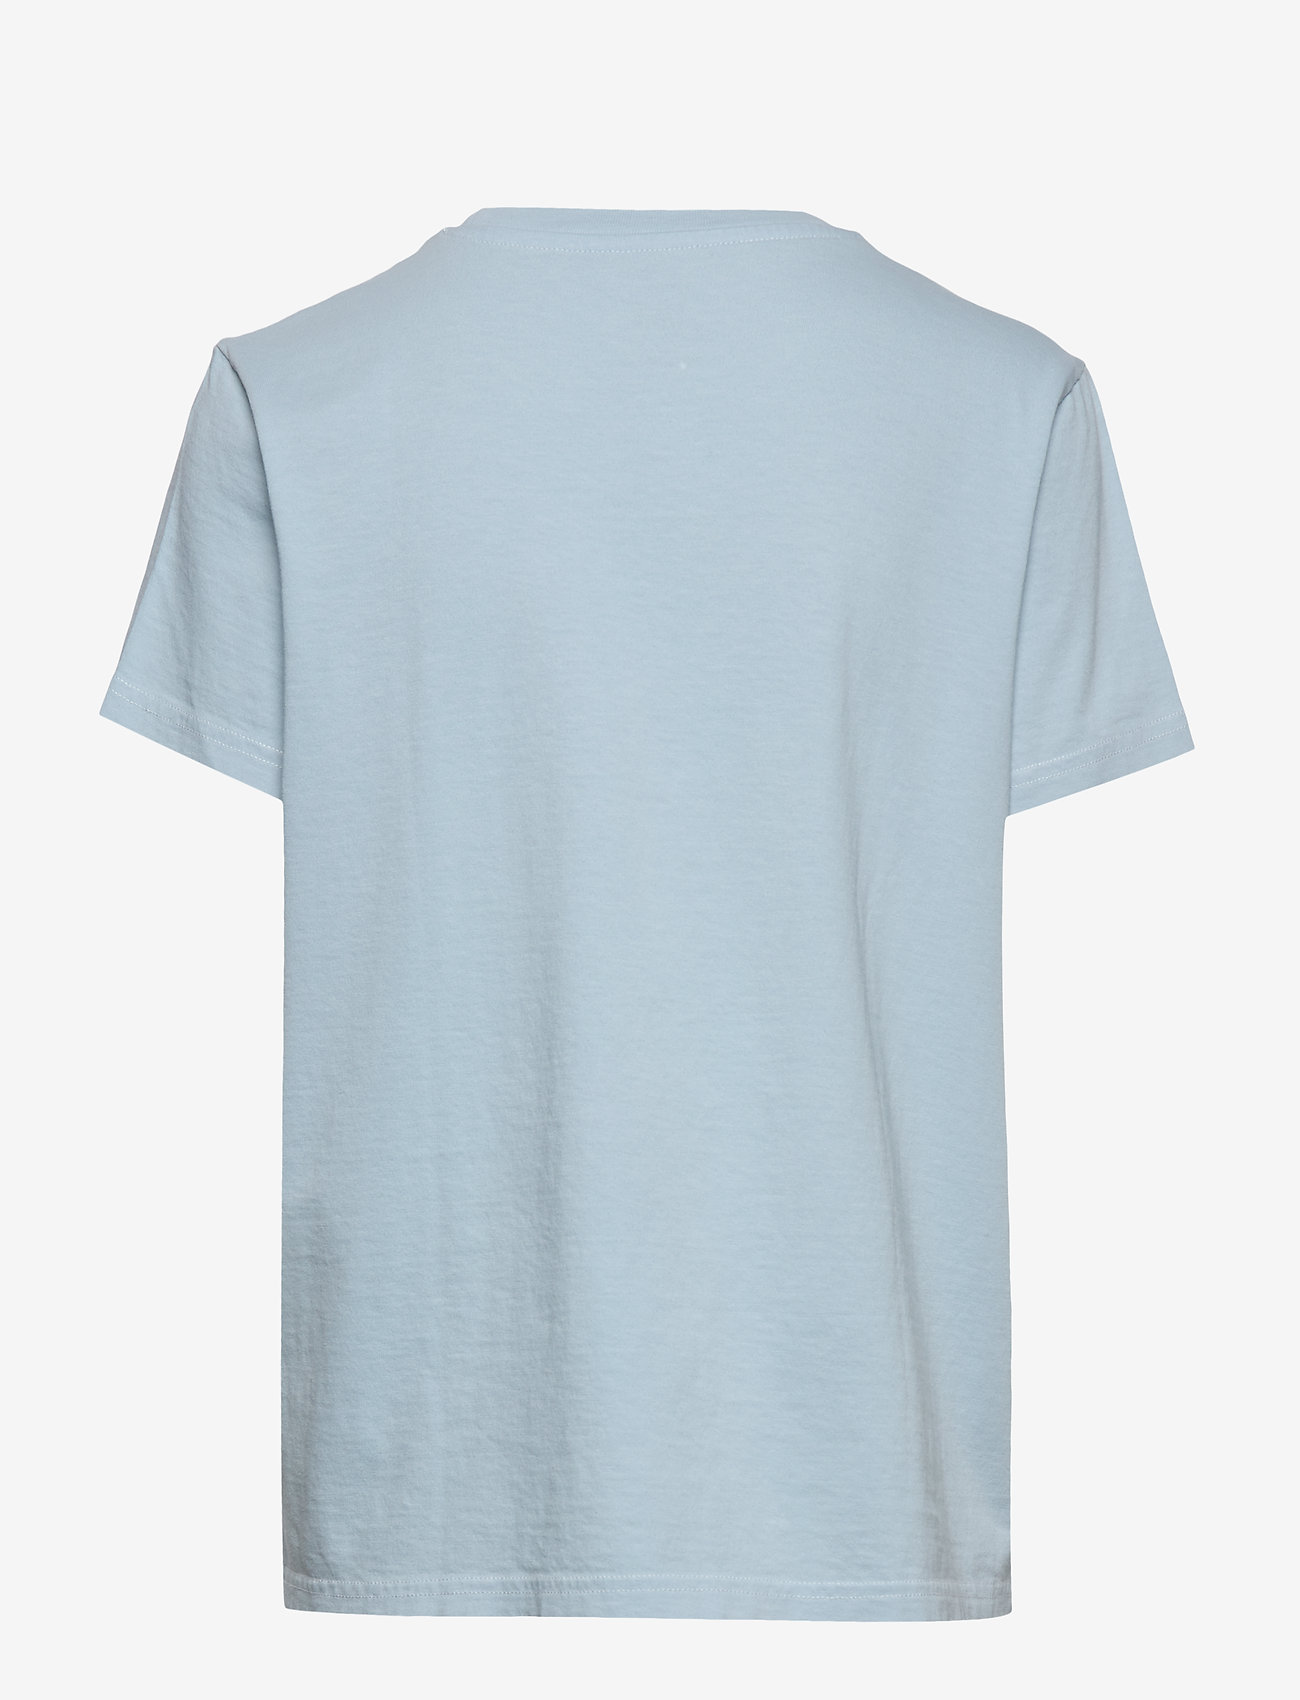 Garment Dyed Tee (Sky Blue) (27.97 €) - Lee Jeans tvvWr